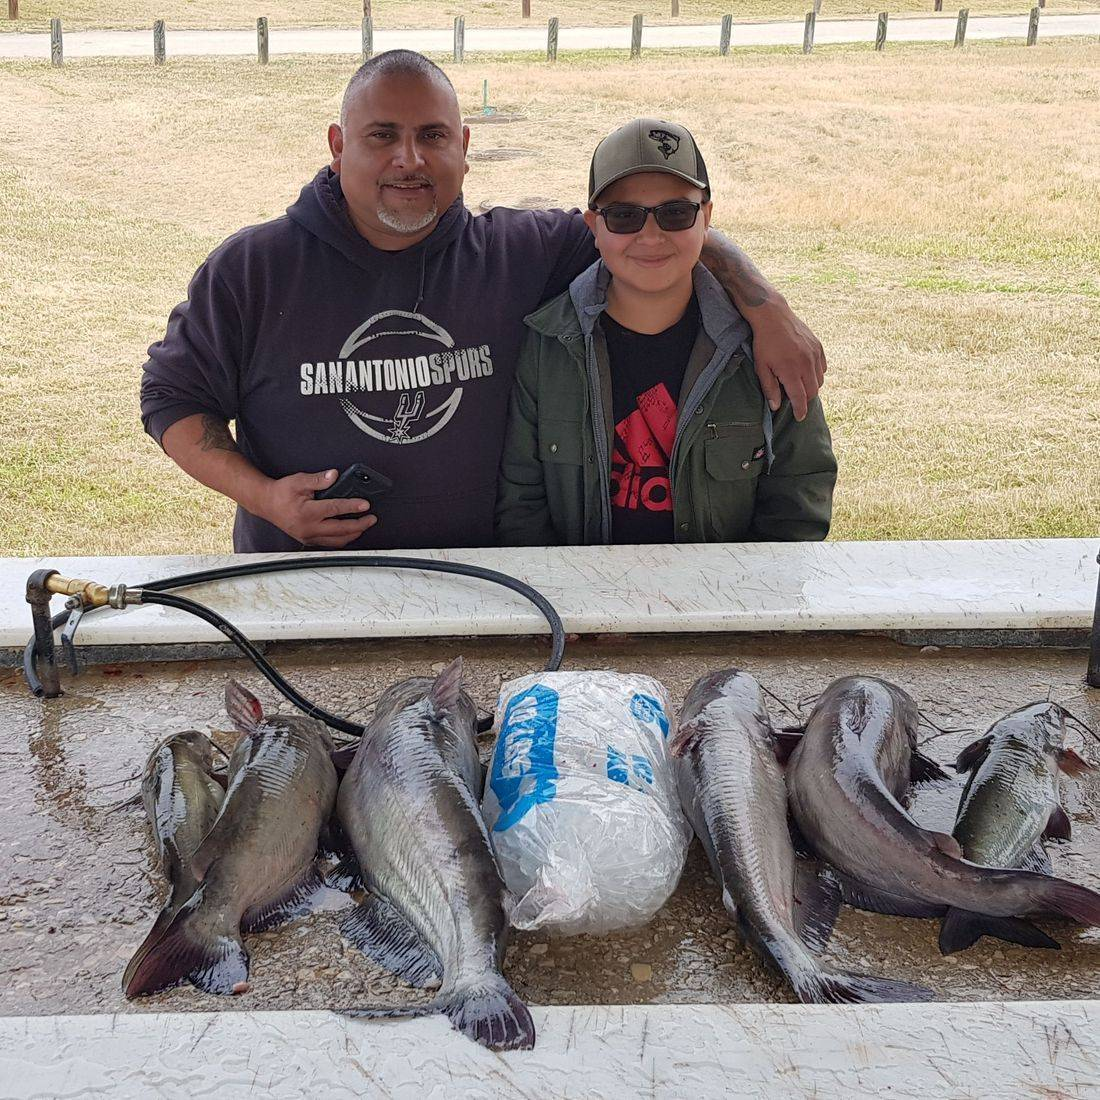 'Fishing Guides San Antonio' 'San Antonio Fishing' 'Fishing guide service' 'fishing charters and trips' 'Calaveras Lake Fishing Guides' 'Braunig Lake Fishing Guides' 'Canyon Lake Fishing Guides' 'Choke Canyon Reservoir fishing guides' 'guided fishing tours' 'Alamo and River walk tourism'